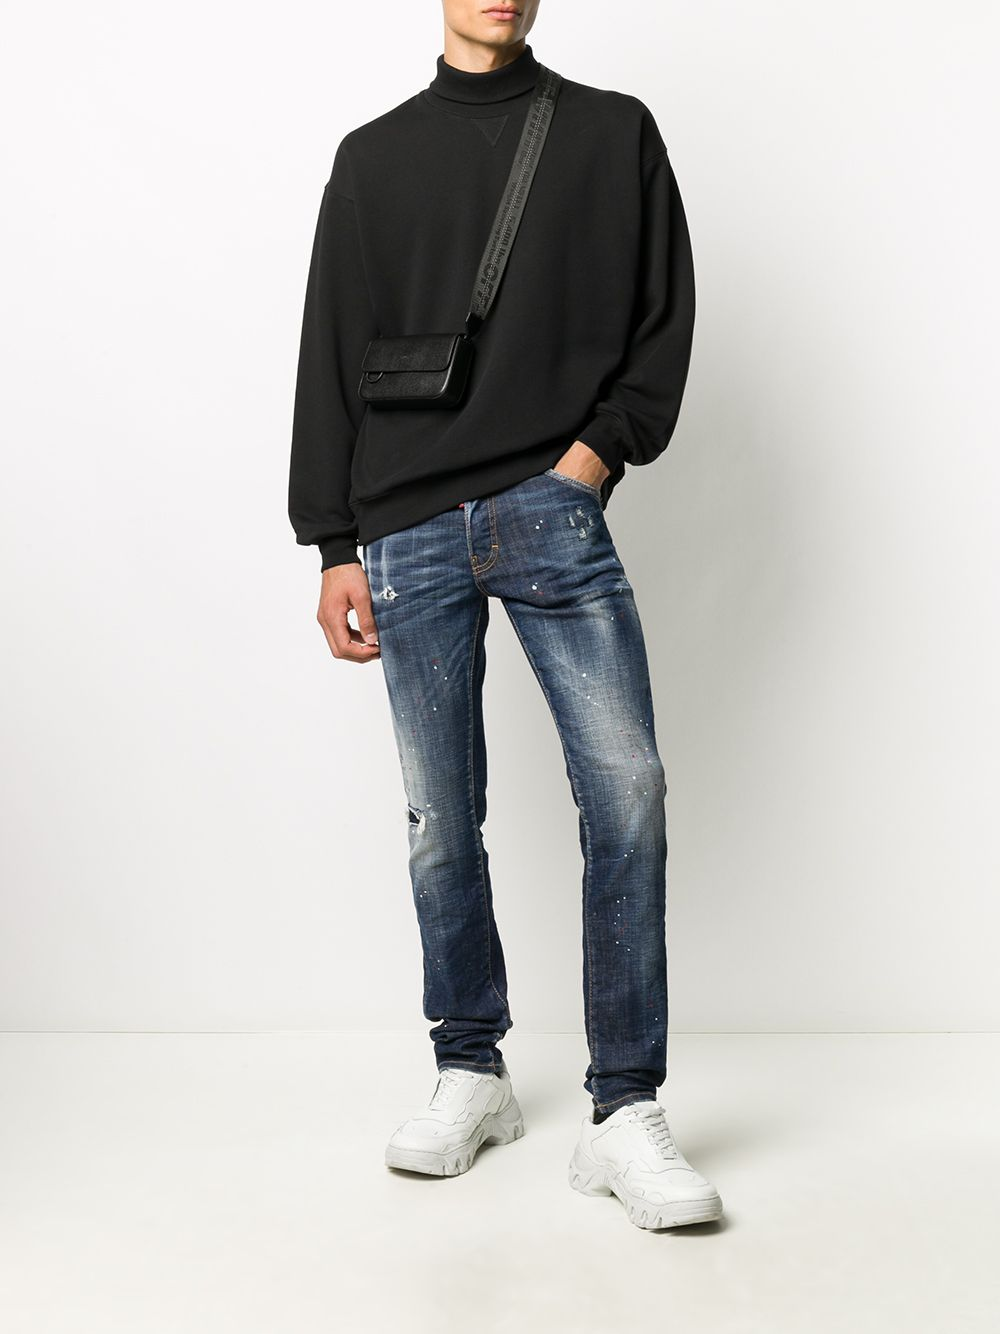 DSQUARED2 Distressed Jeans With Maple Leaf Patch - Maison De Fashion